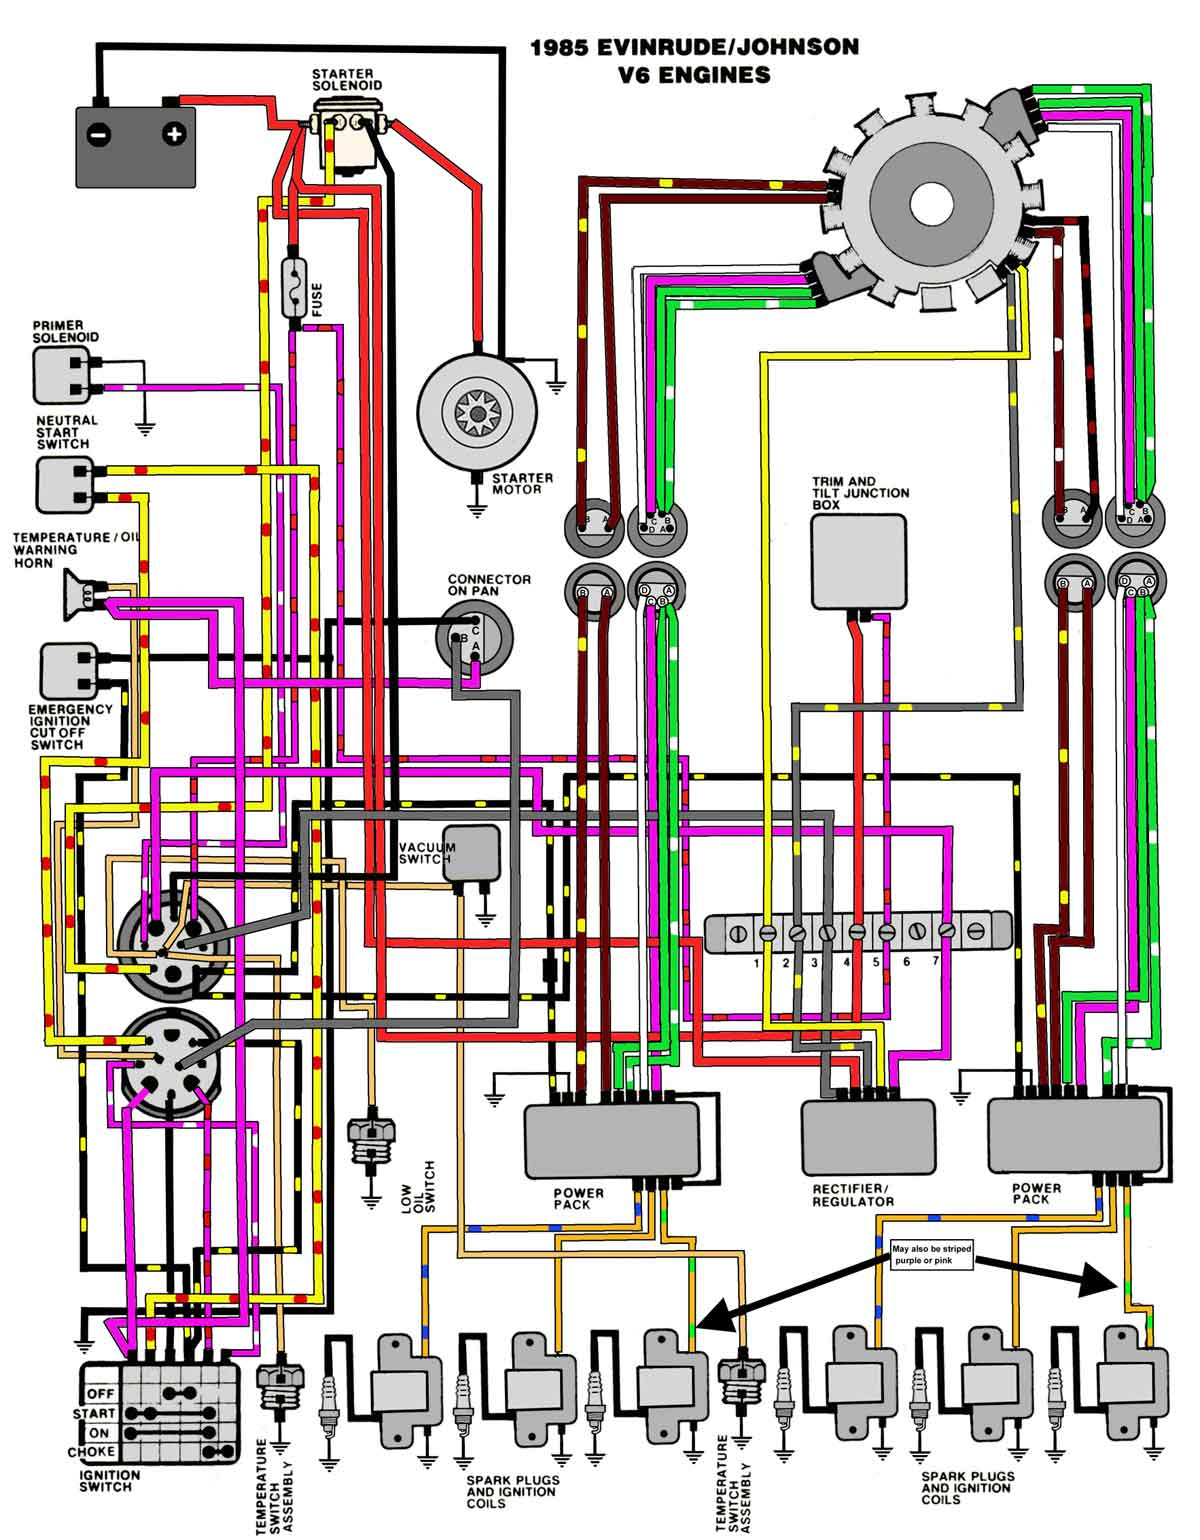 85_V6 mastertech marine evinrude johnson outboard wiring diagrams 70 HP Evinrude Schematic at cos-gaming.co